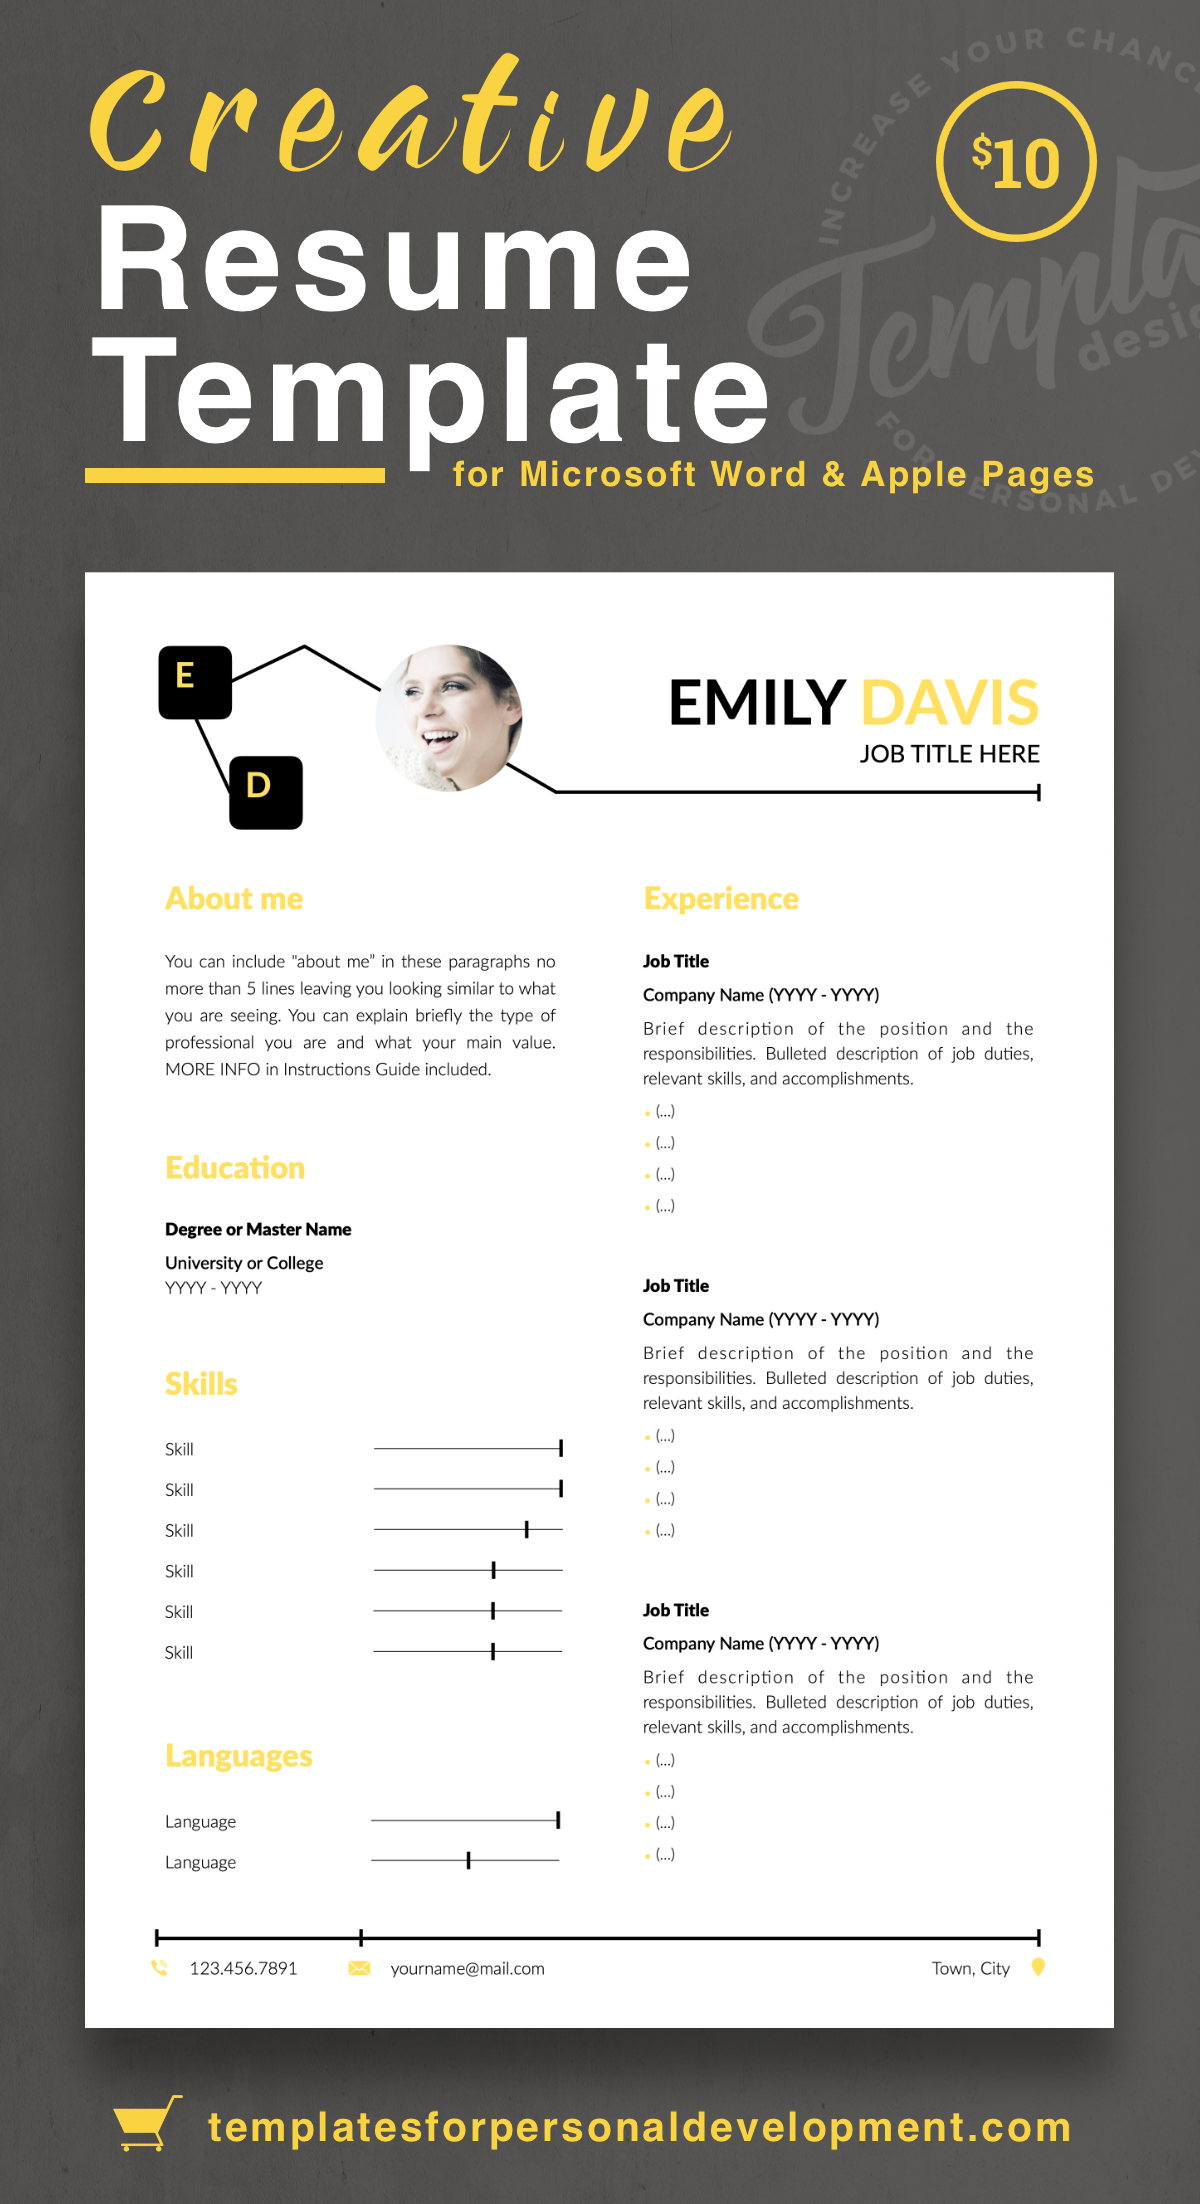 Emily Davis Creative Resume Cv Template For Word Pages Us Letter A4 Files 1 2 3 Page Resume Version Cover Letter References Cover Letter